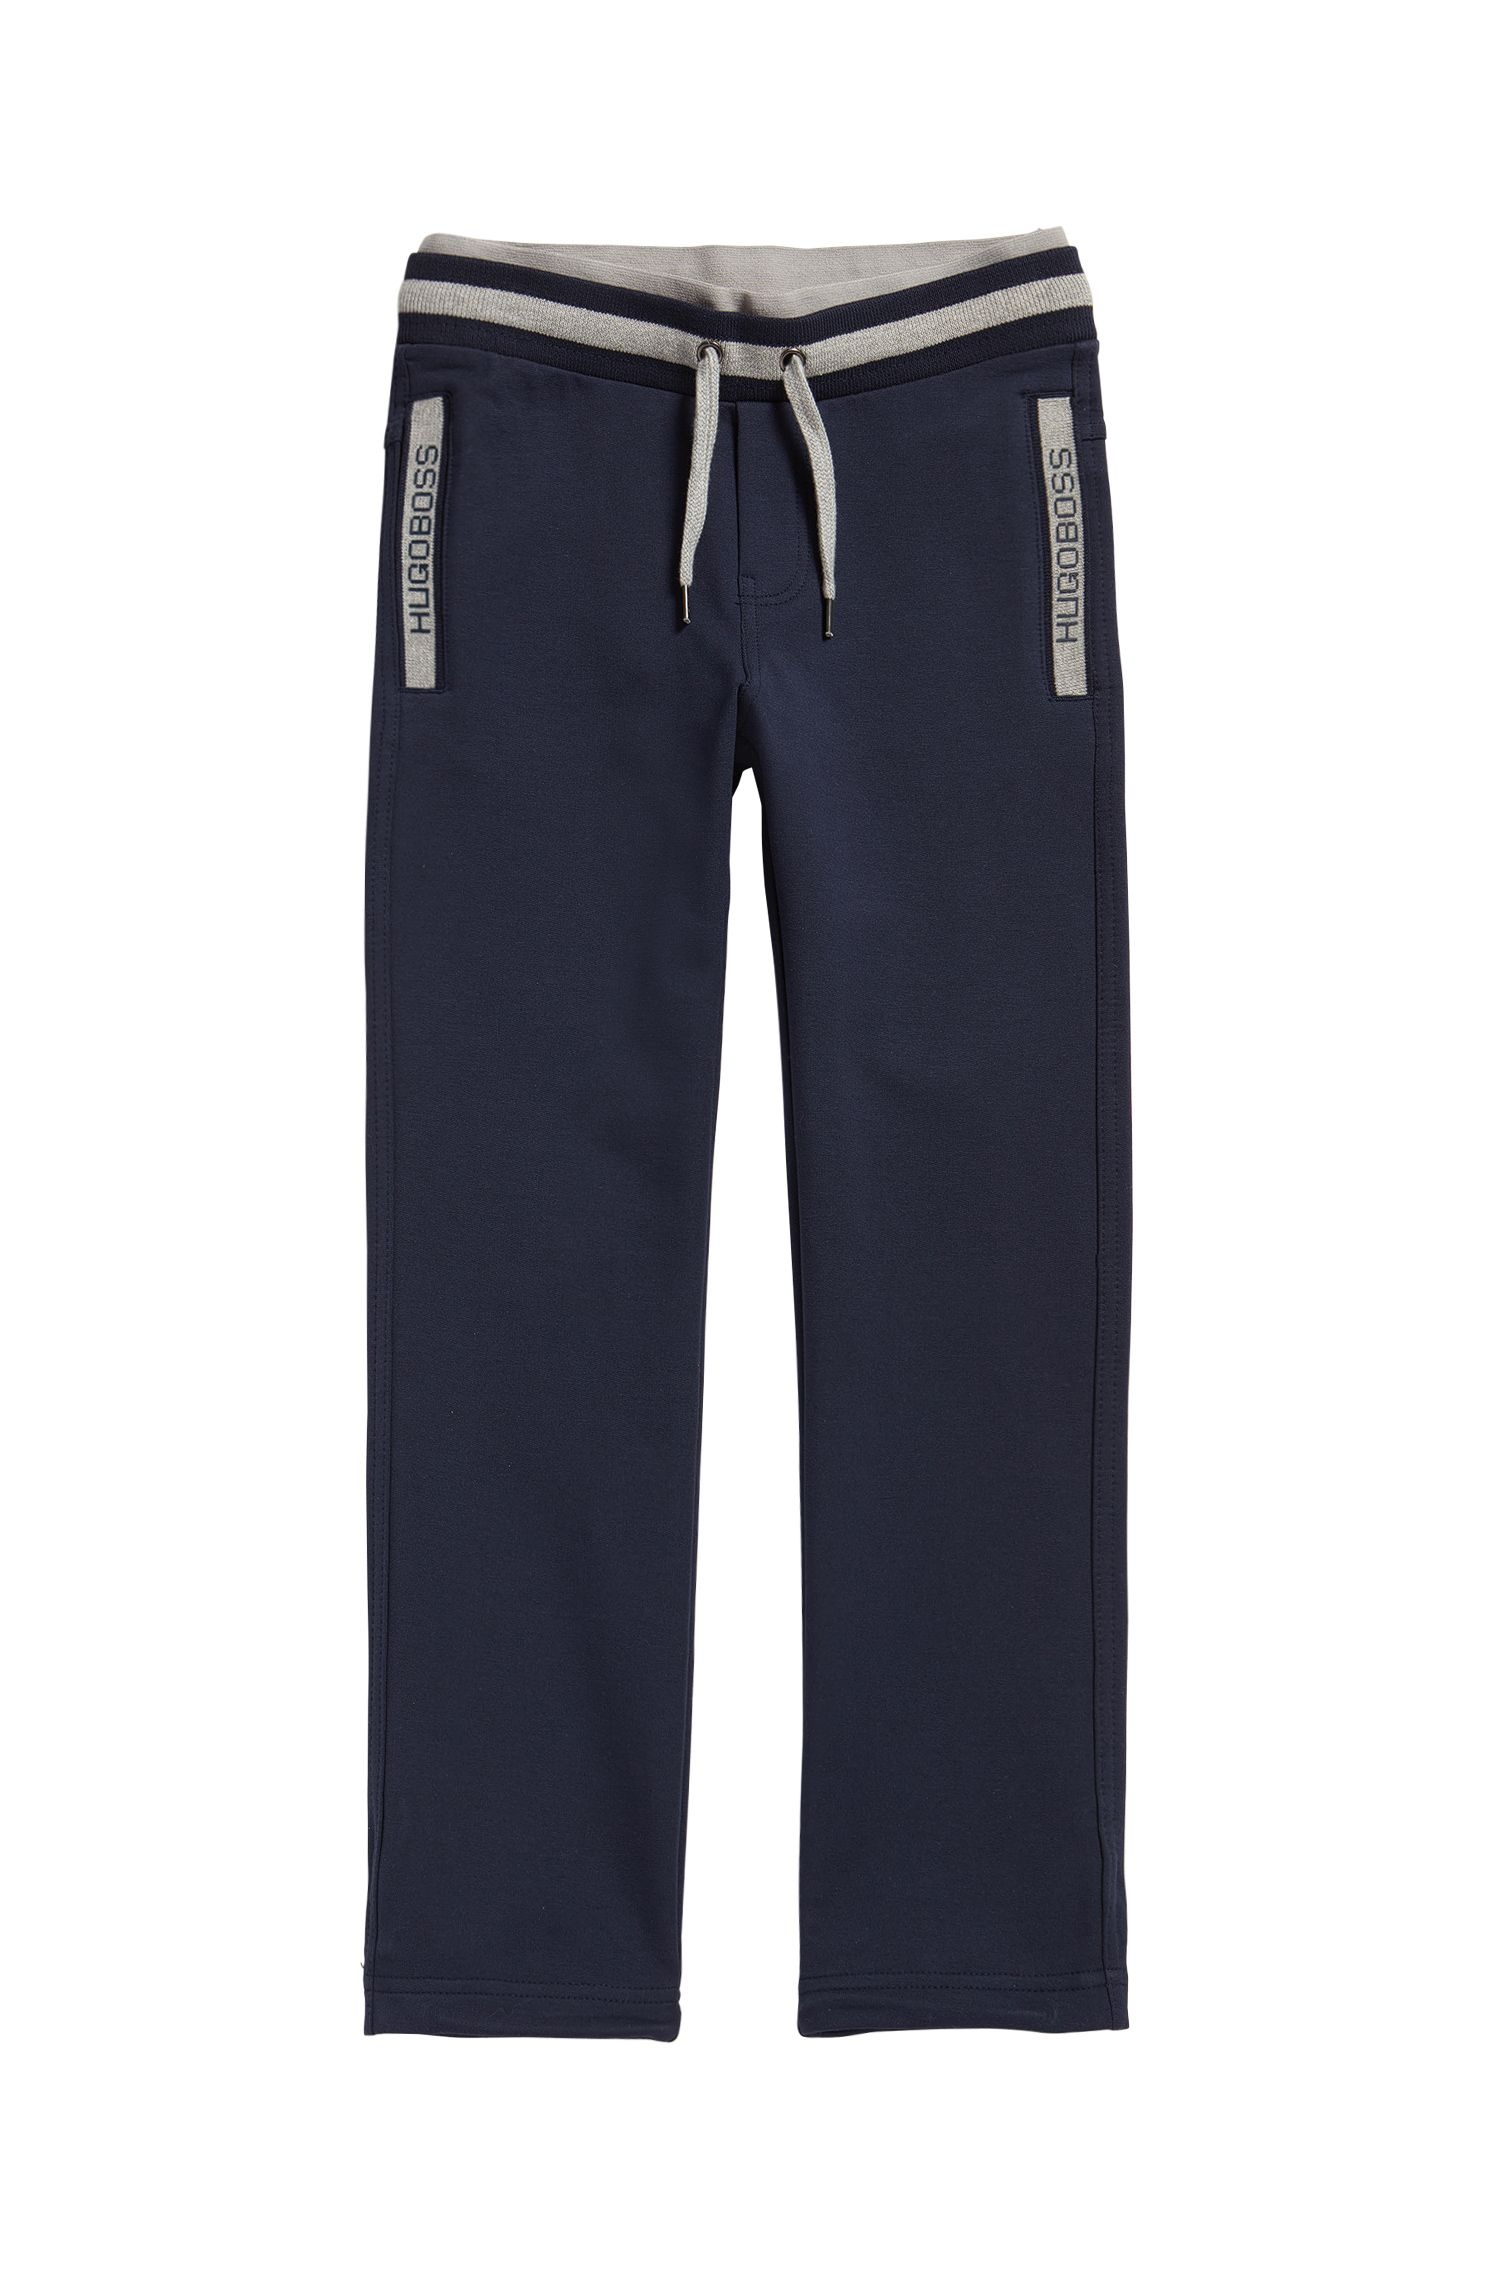 Kids' drawstring jogging bottoms in stretch cotton